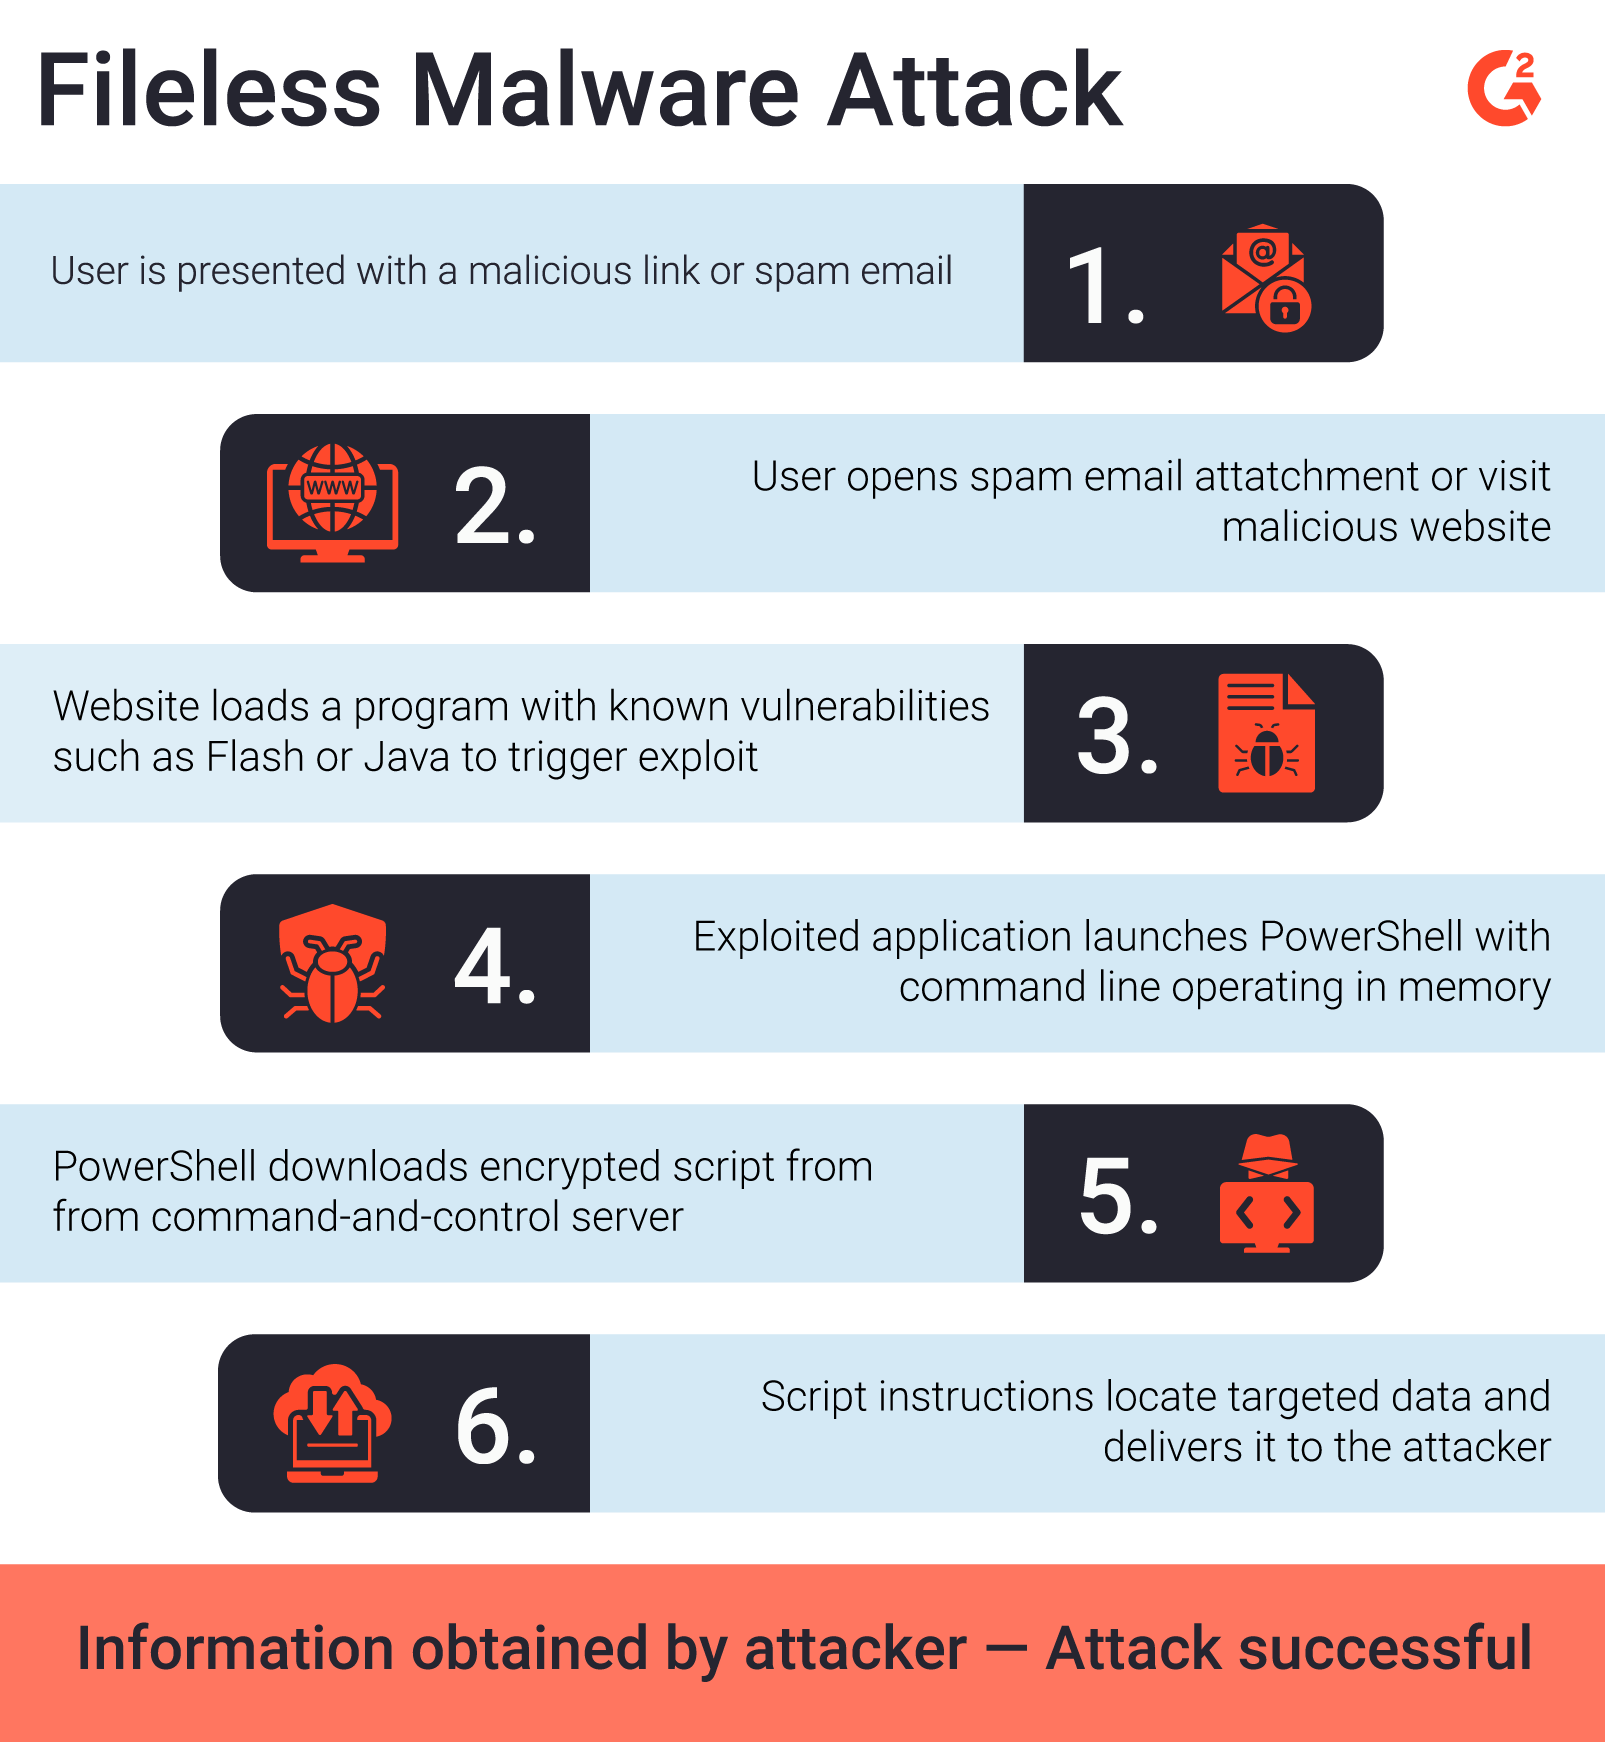 Six steps of a fileless malware attack and progression to attacker receiving user data